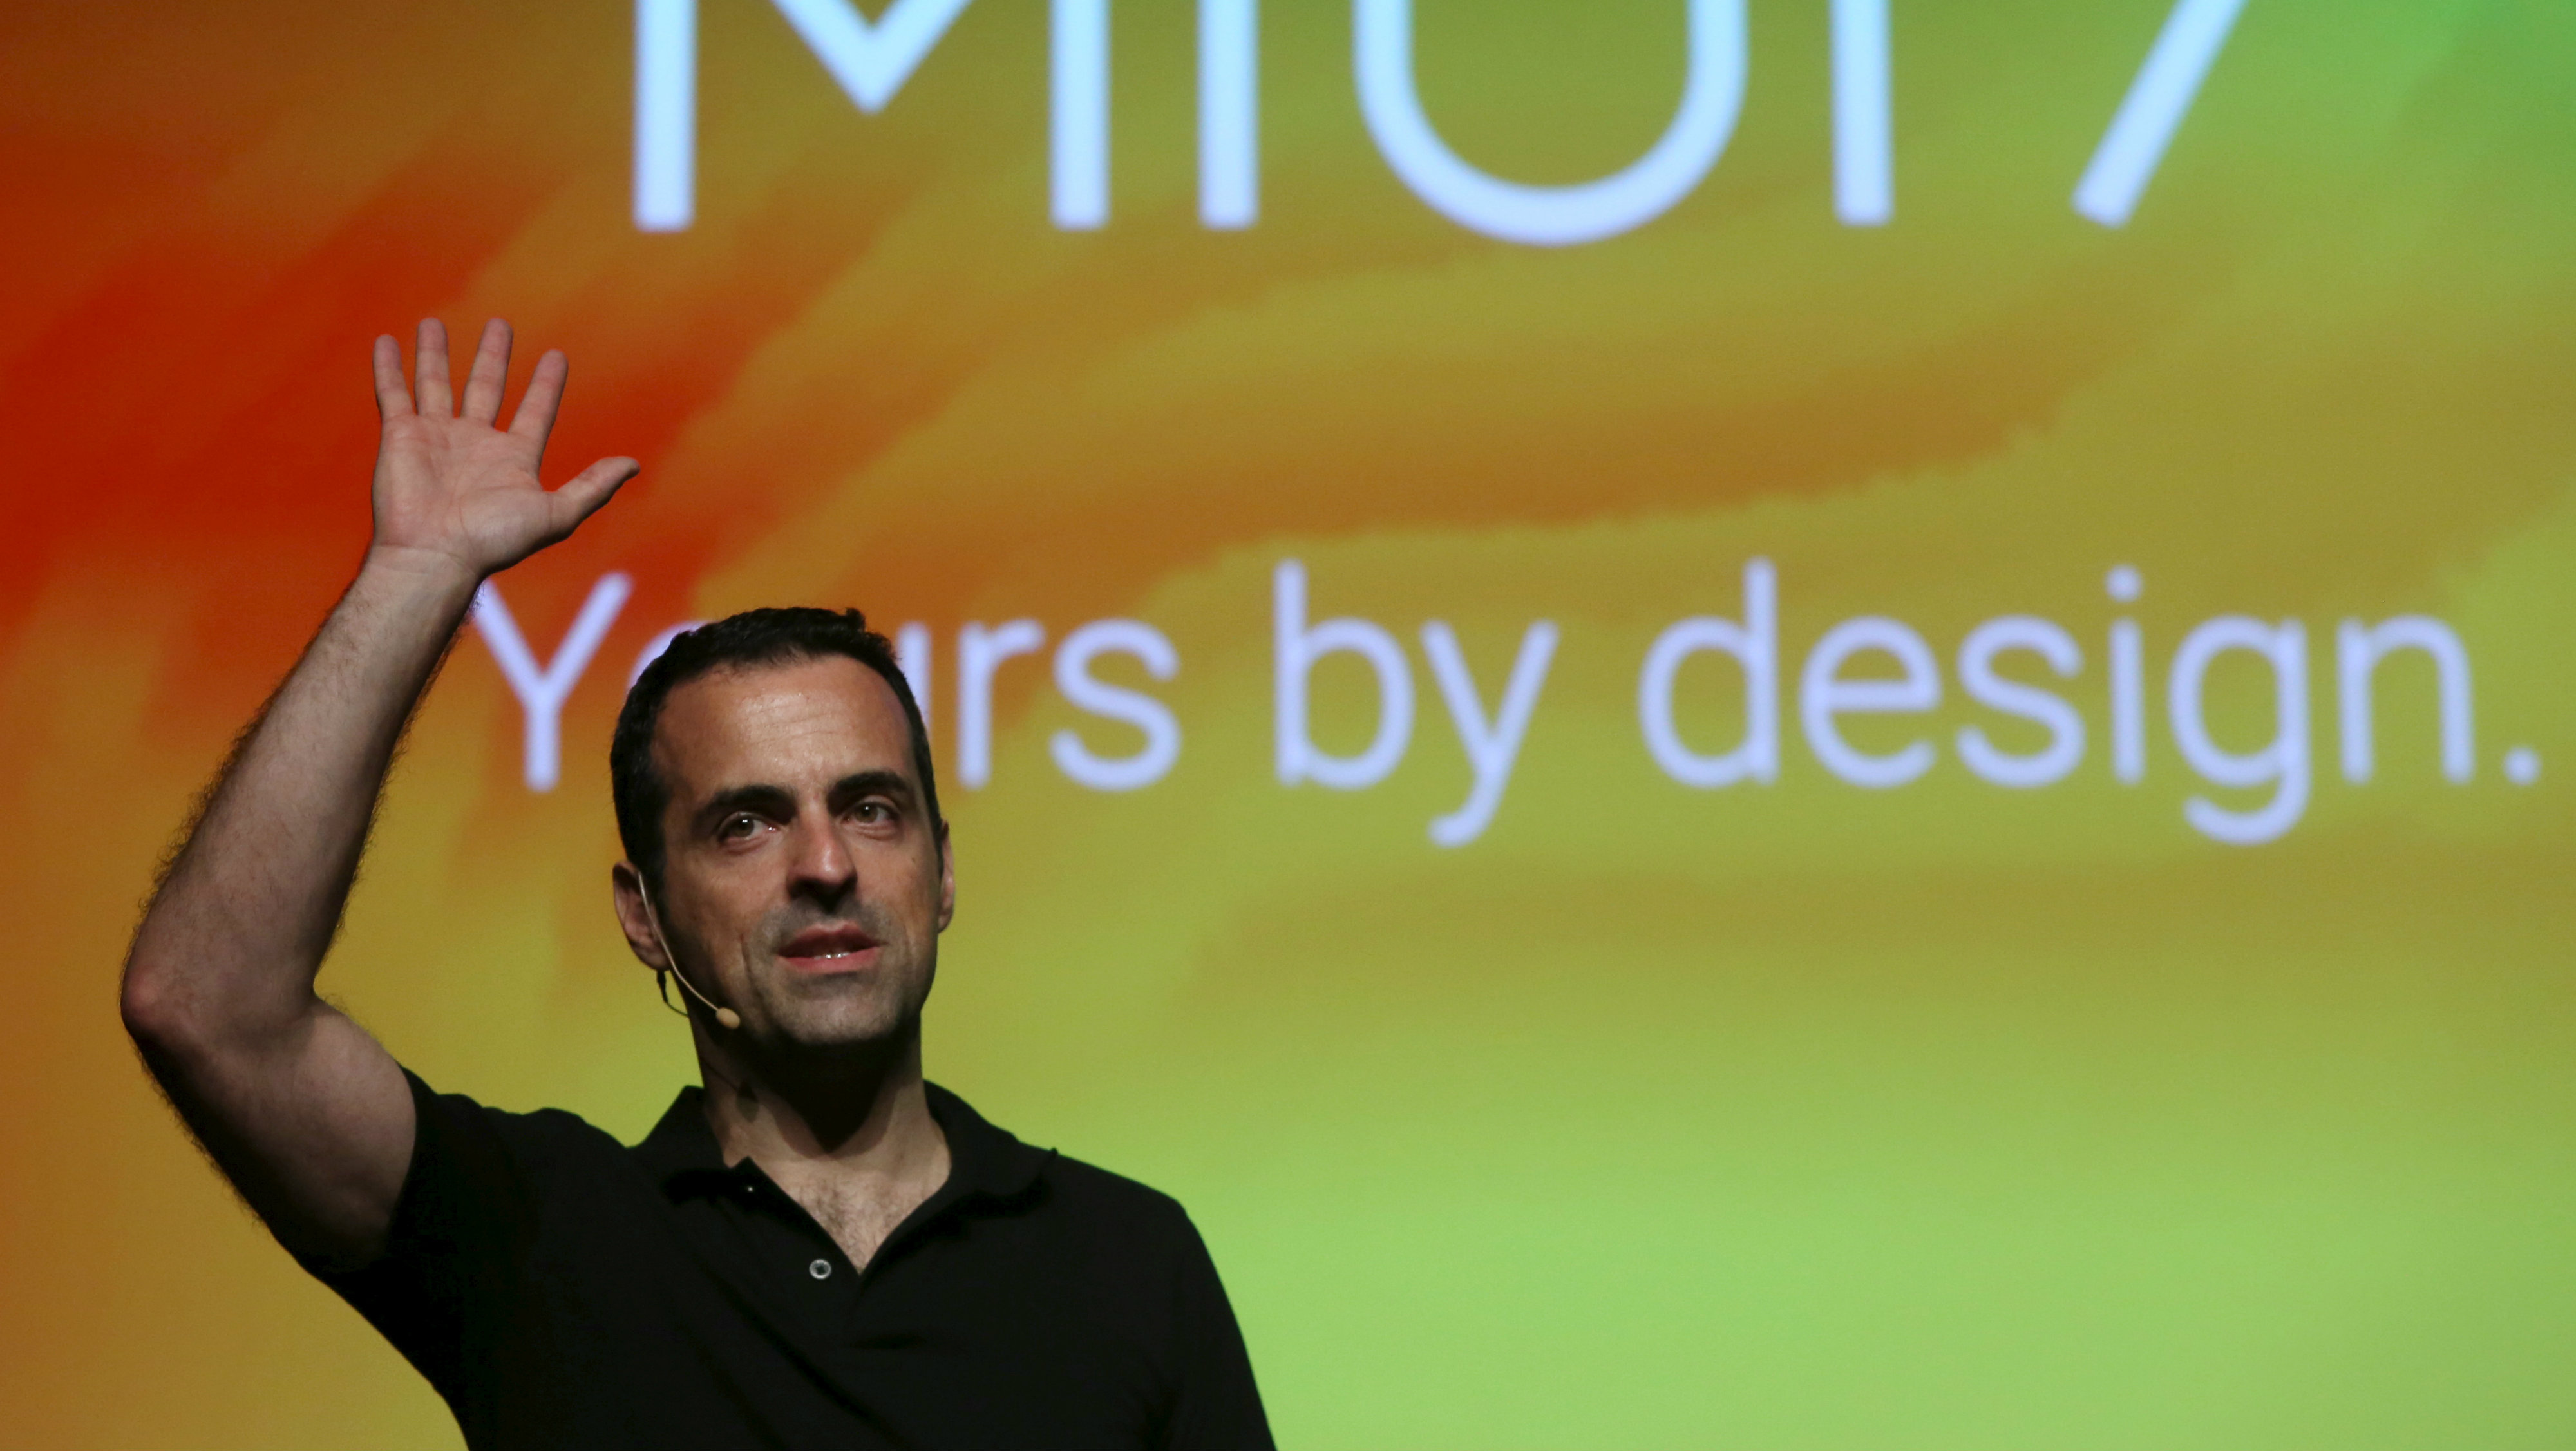 Brazil's Hugo Barra, vice president of international operations for Chinese smartphone maker Xiaomi, speaks during a news conference in Sao Paulo, Brazil, September 24, 2015. Chinese smartphone maker Xiaomi launches a global version of the operating system Miui 7 that will be available in Brazil in October.